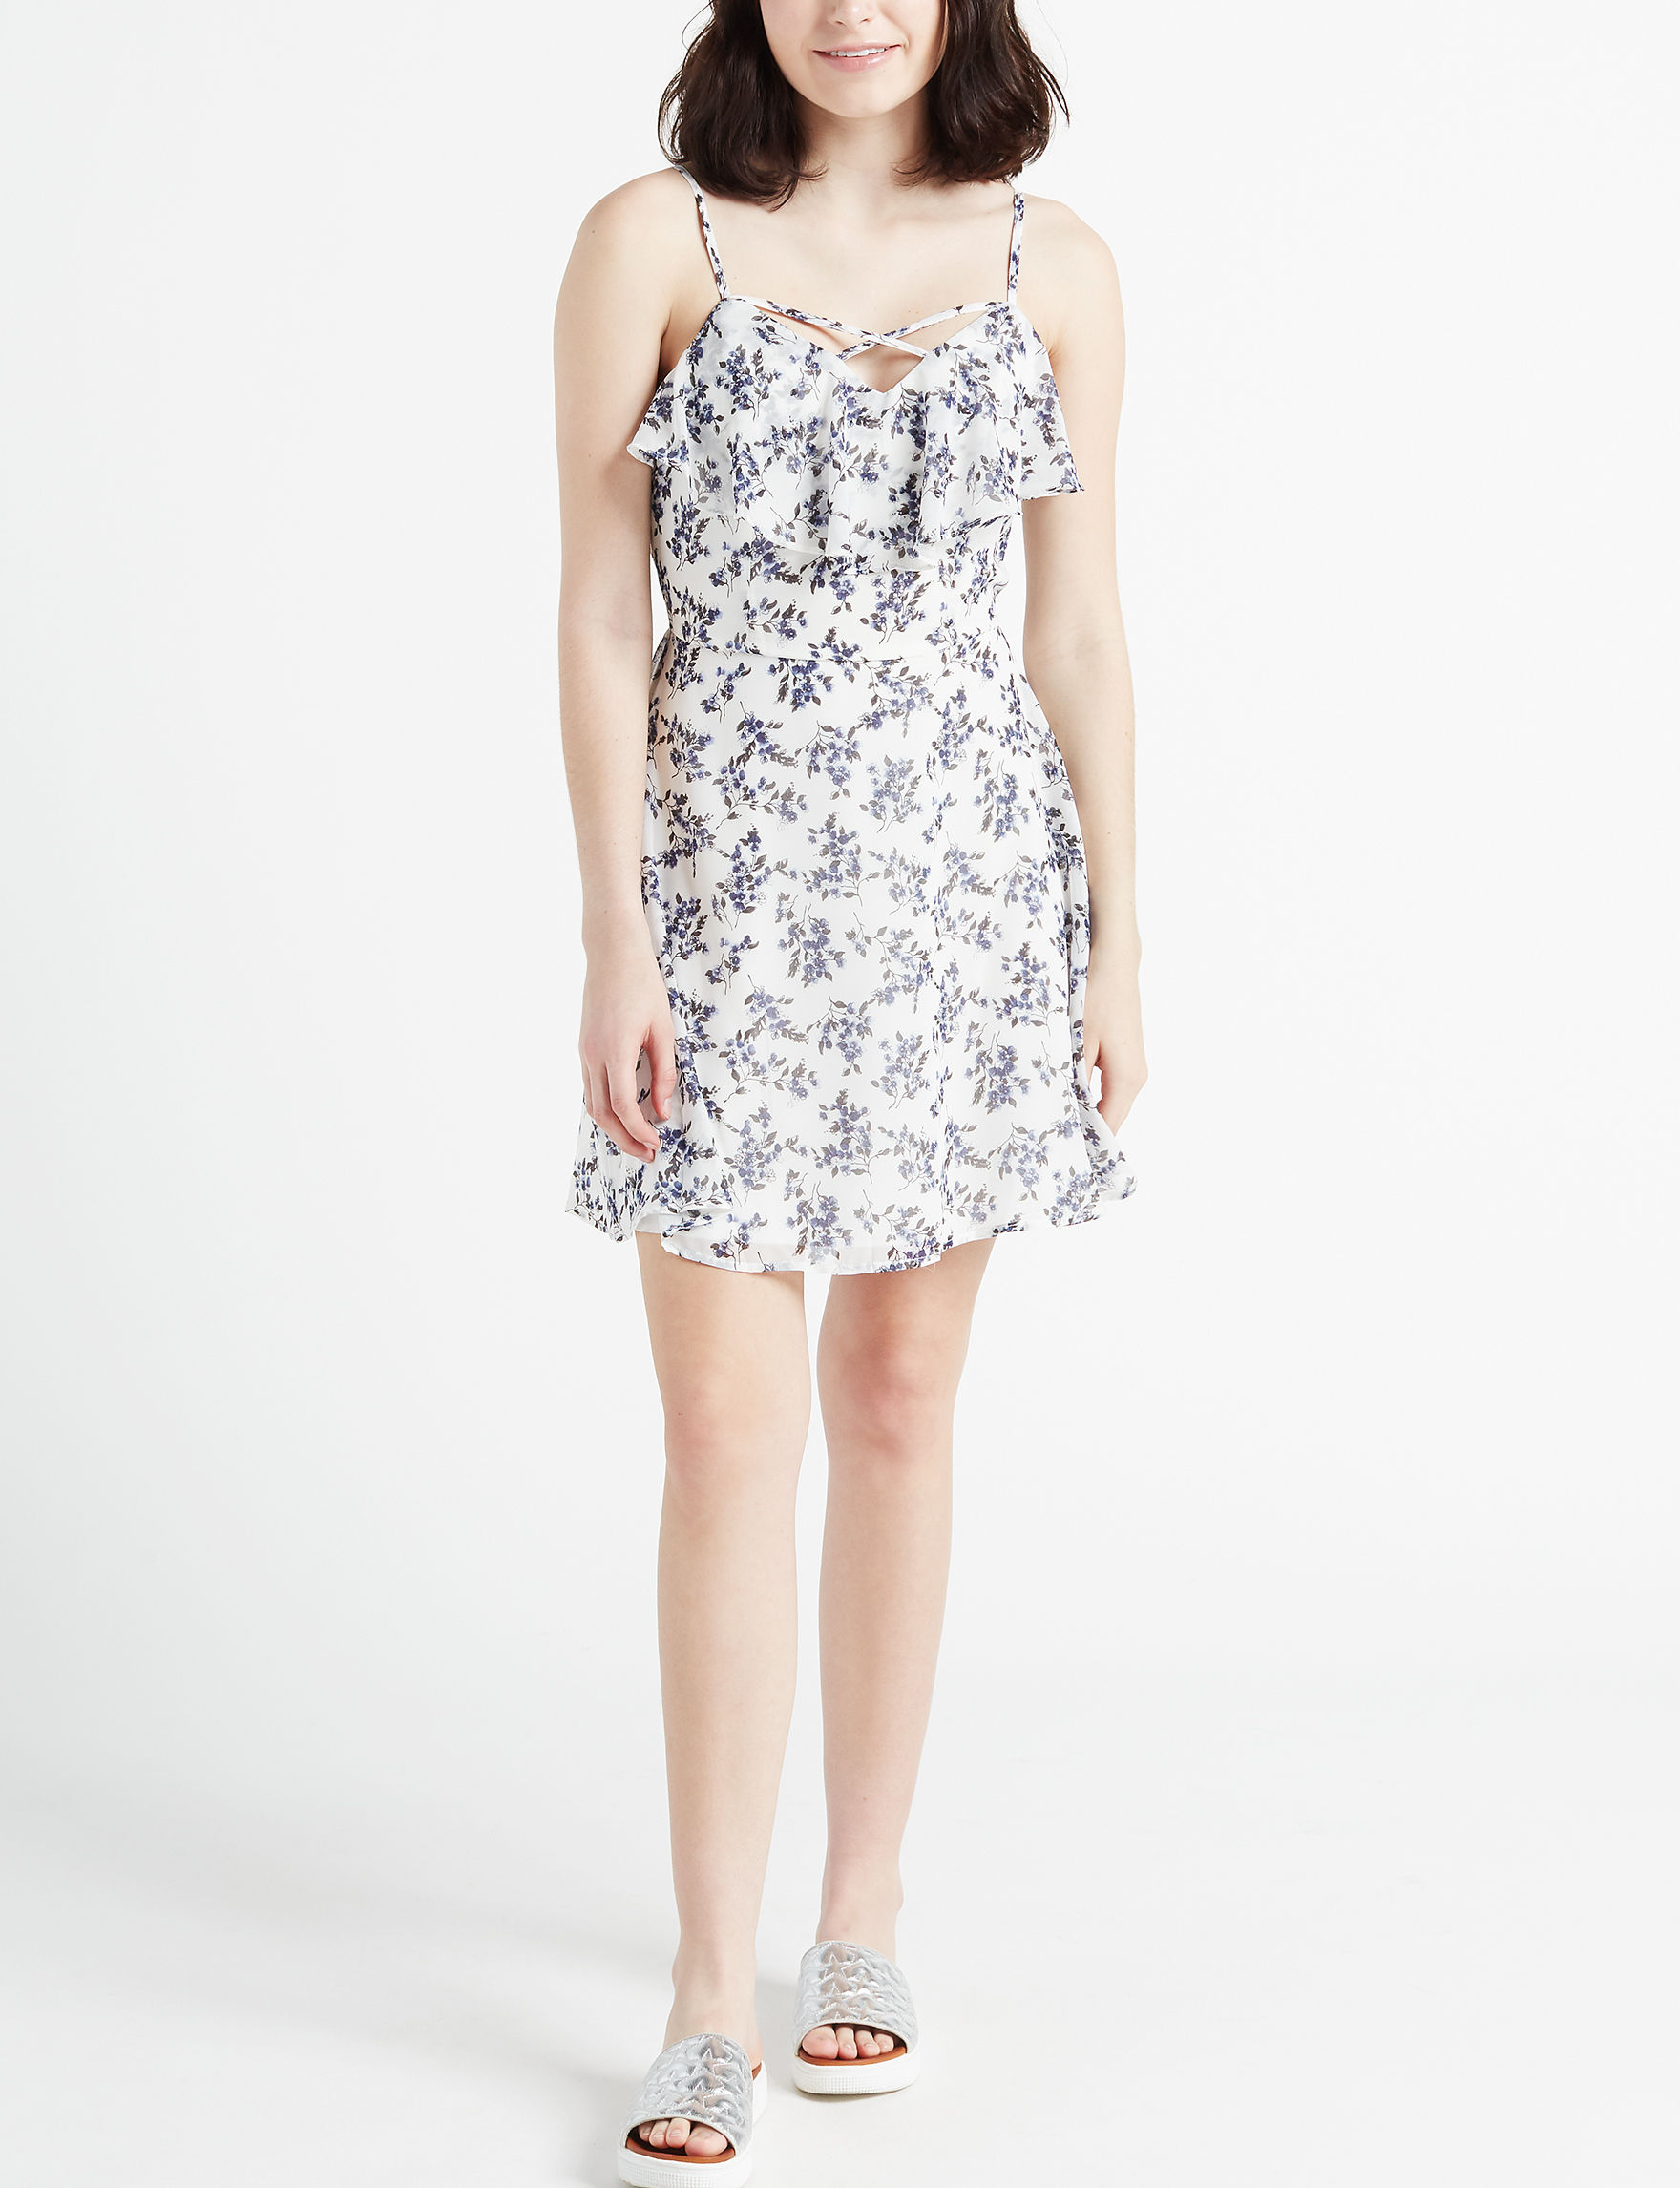 Trixxi White / Navy Everyday & Casual Fit & Flare Dresses